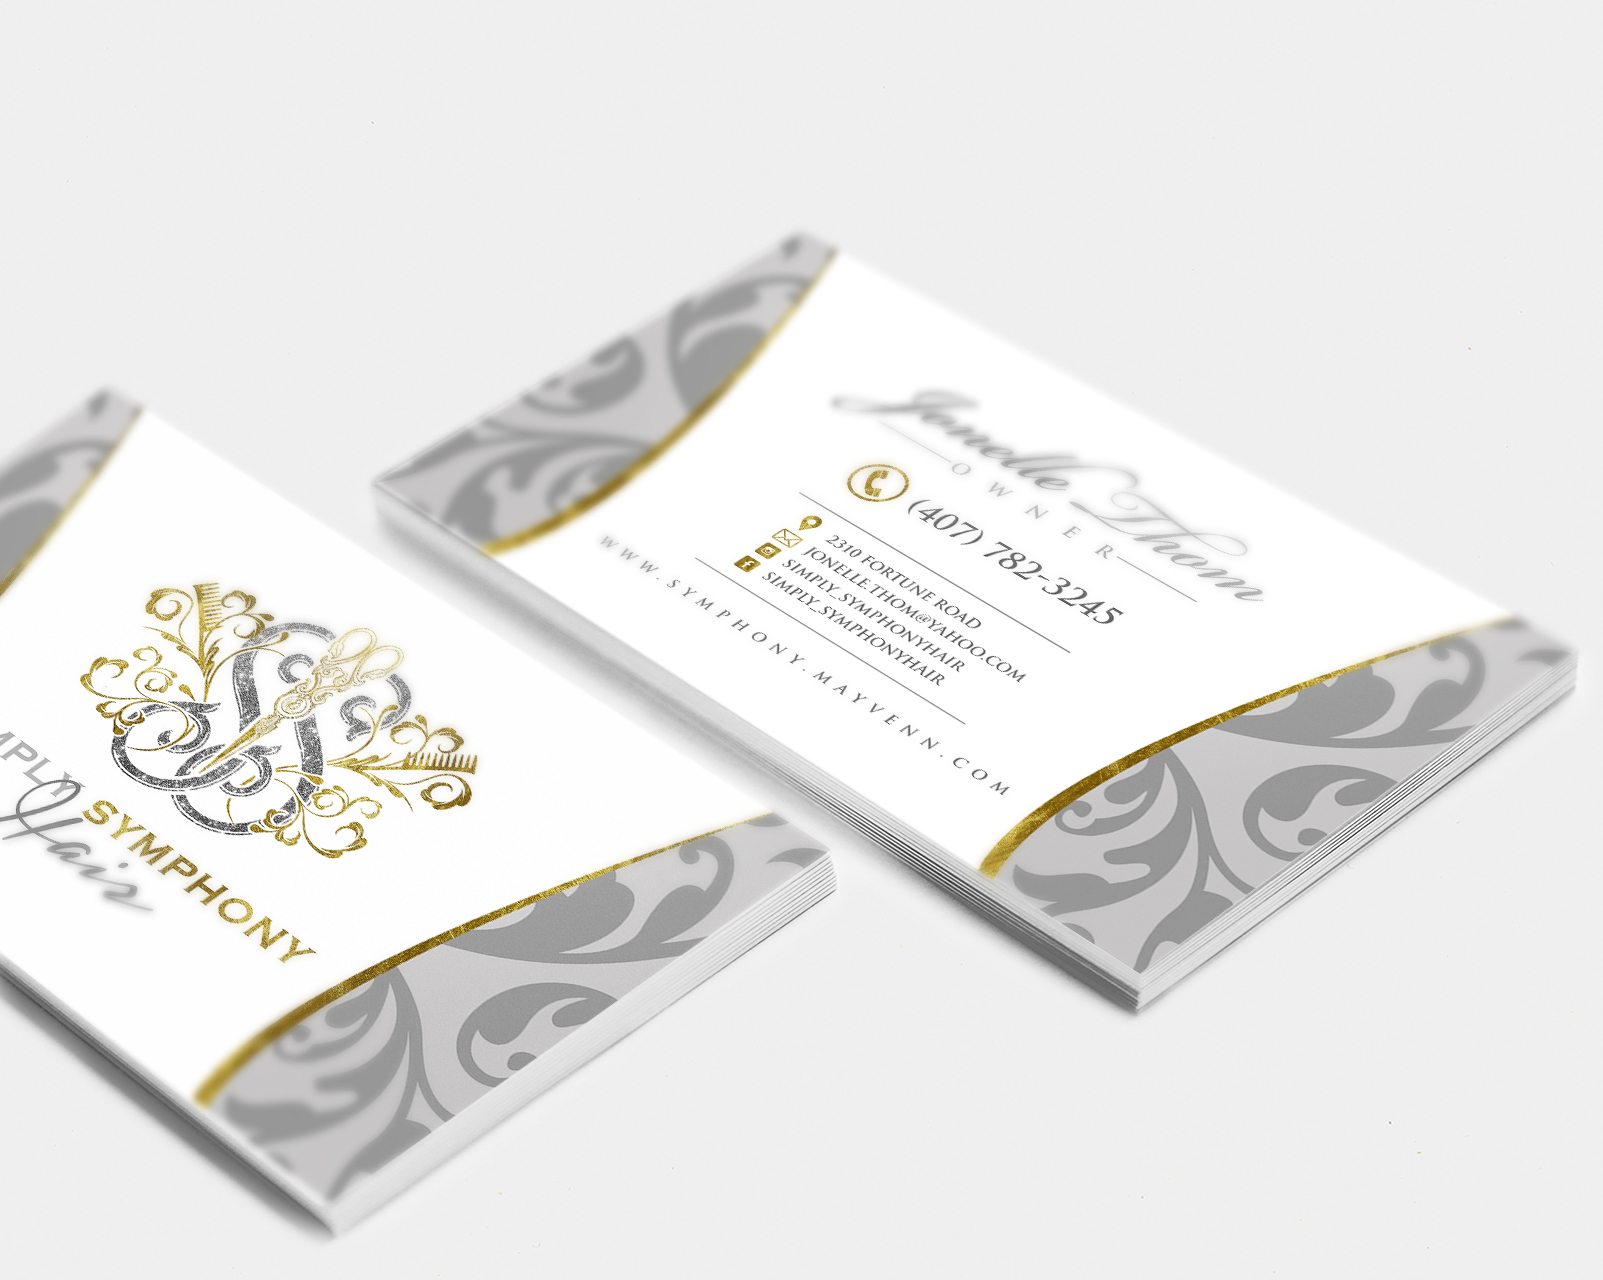 SS business cards mockup